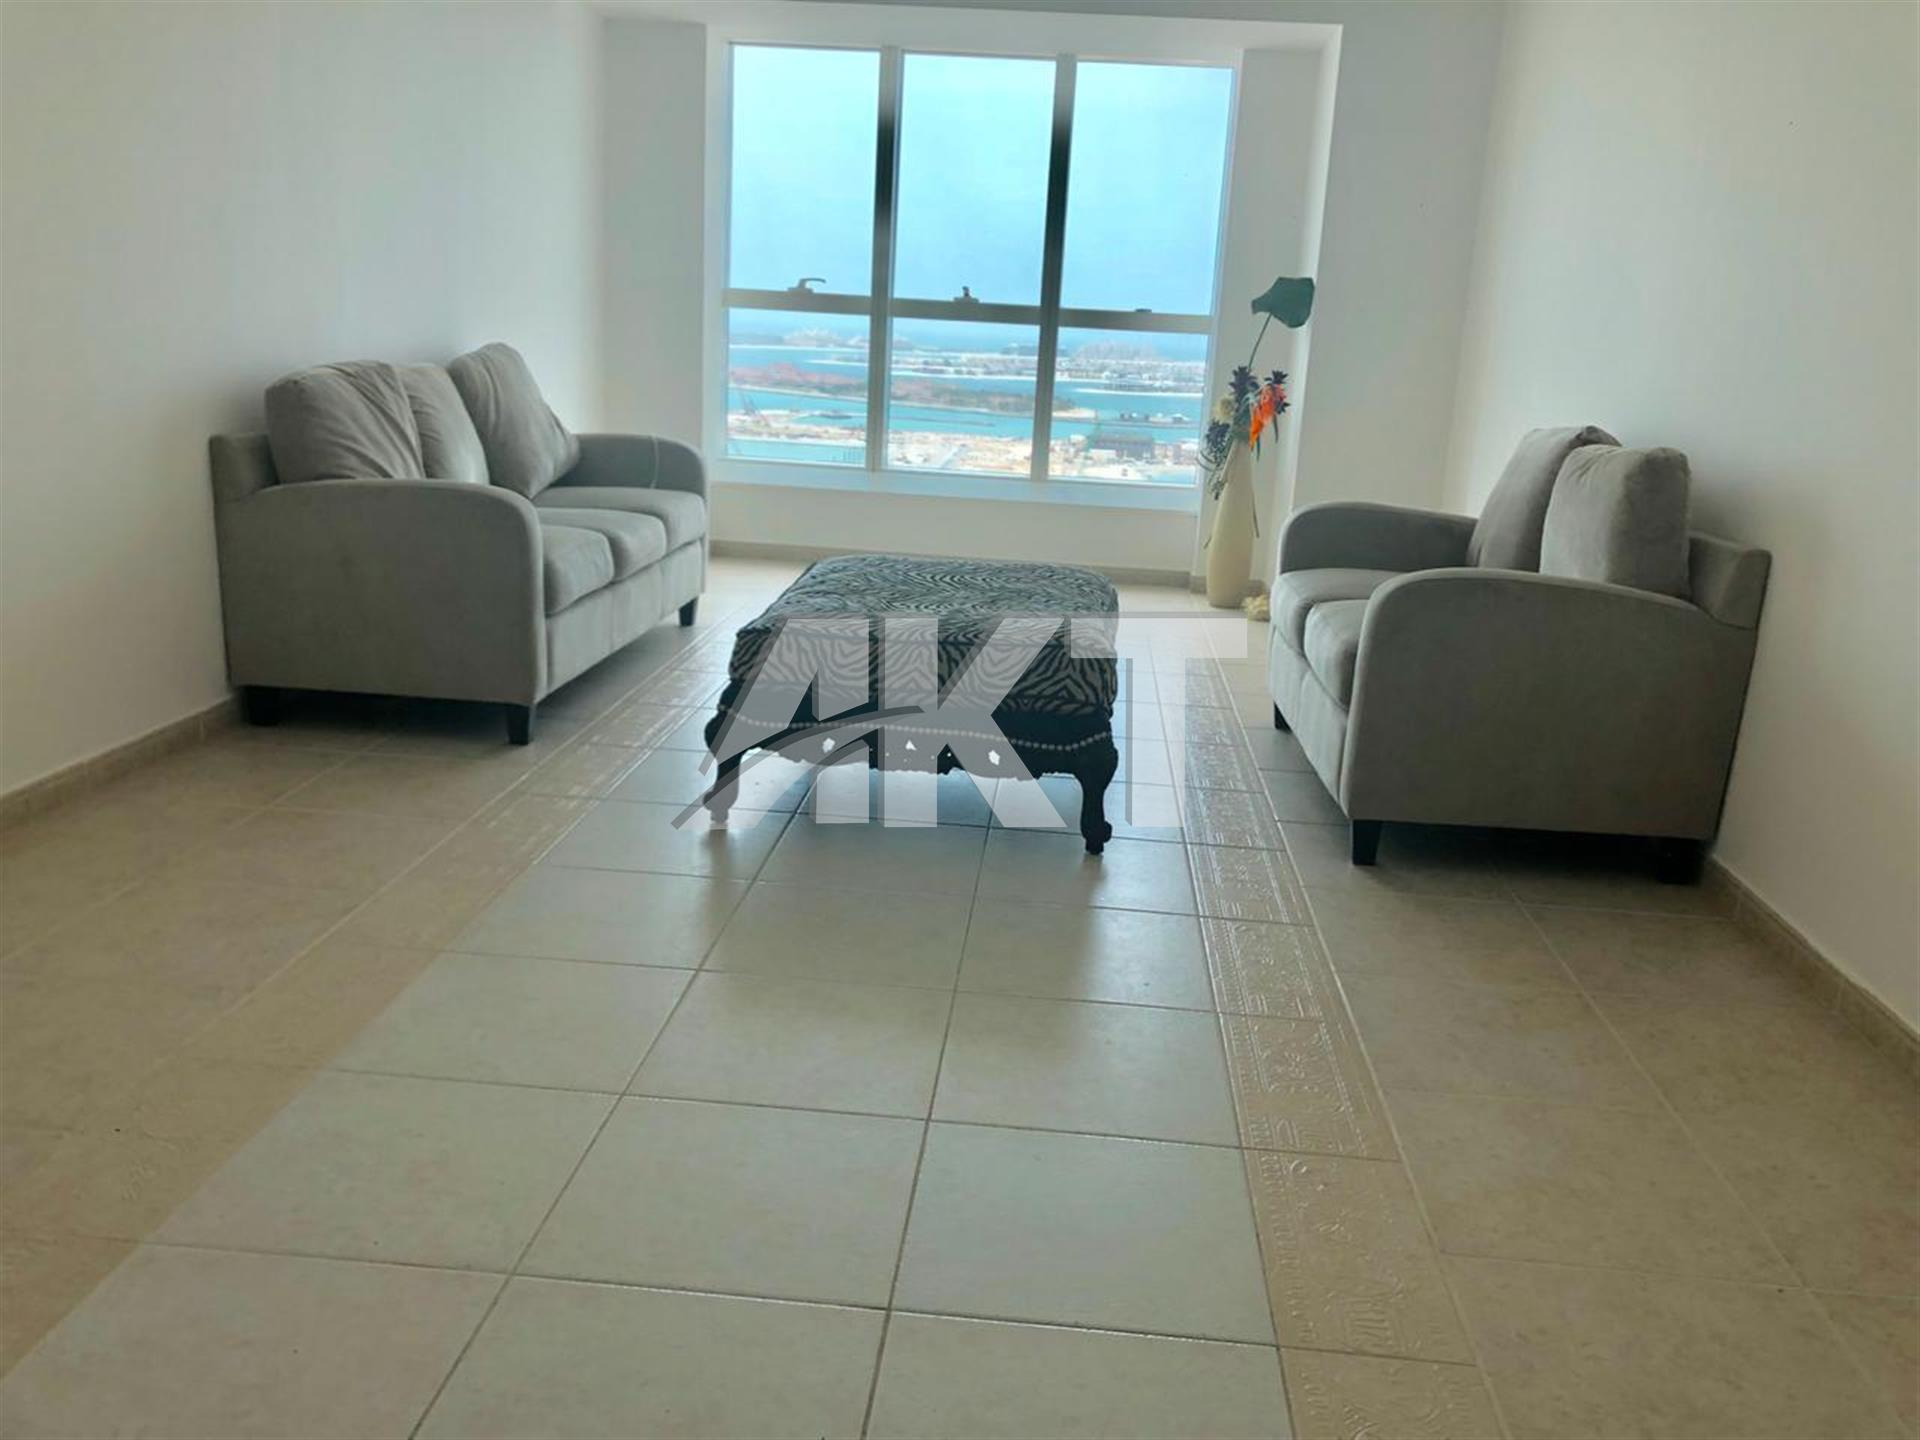 Full Sea View  2BR Sami furnished in luxury Building